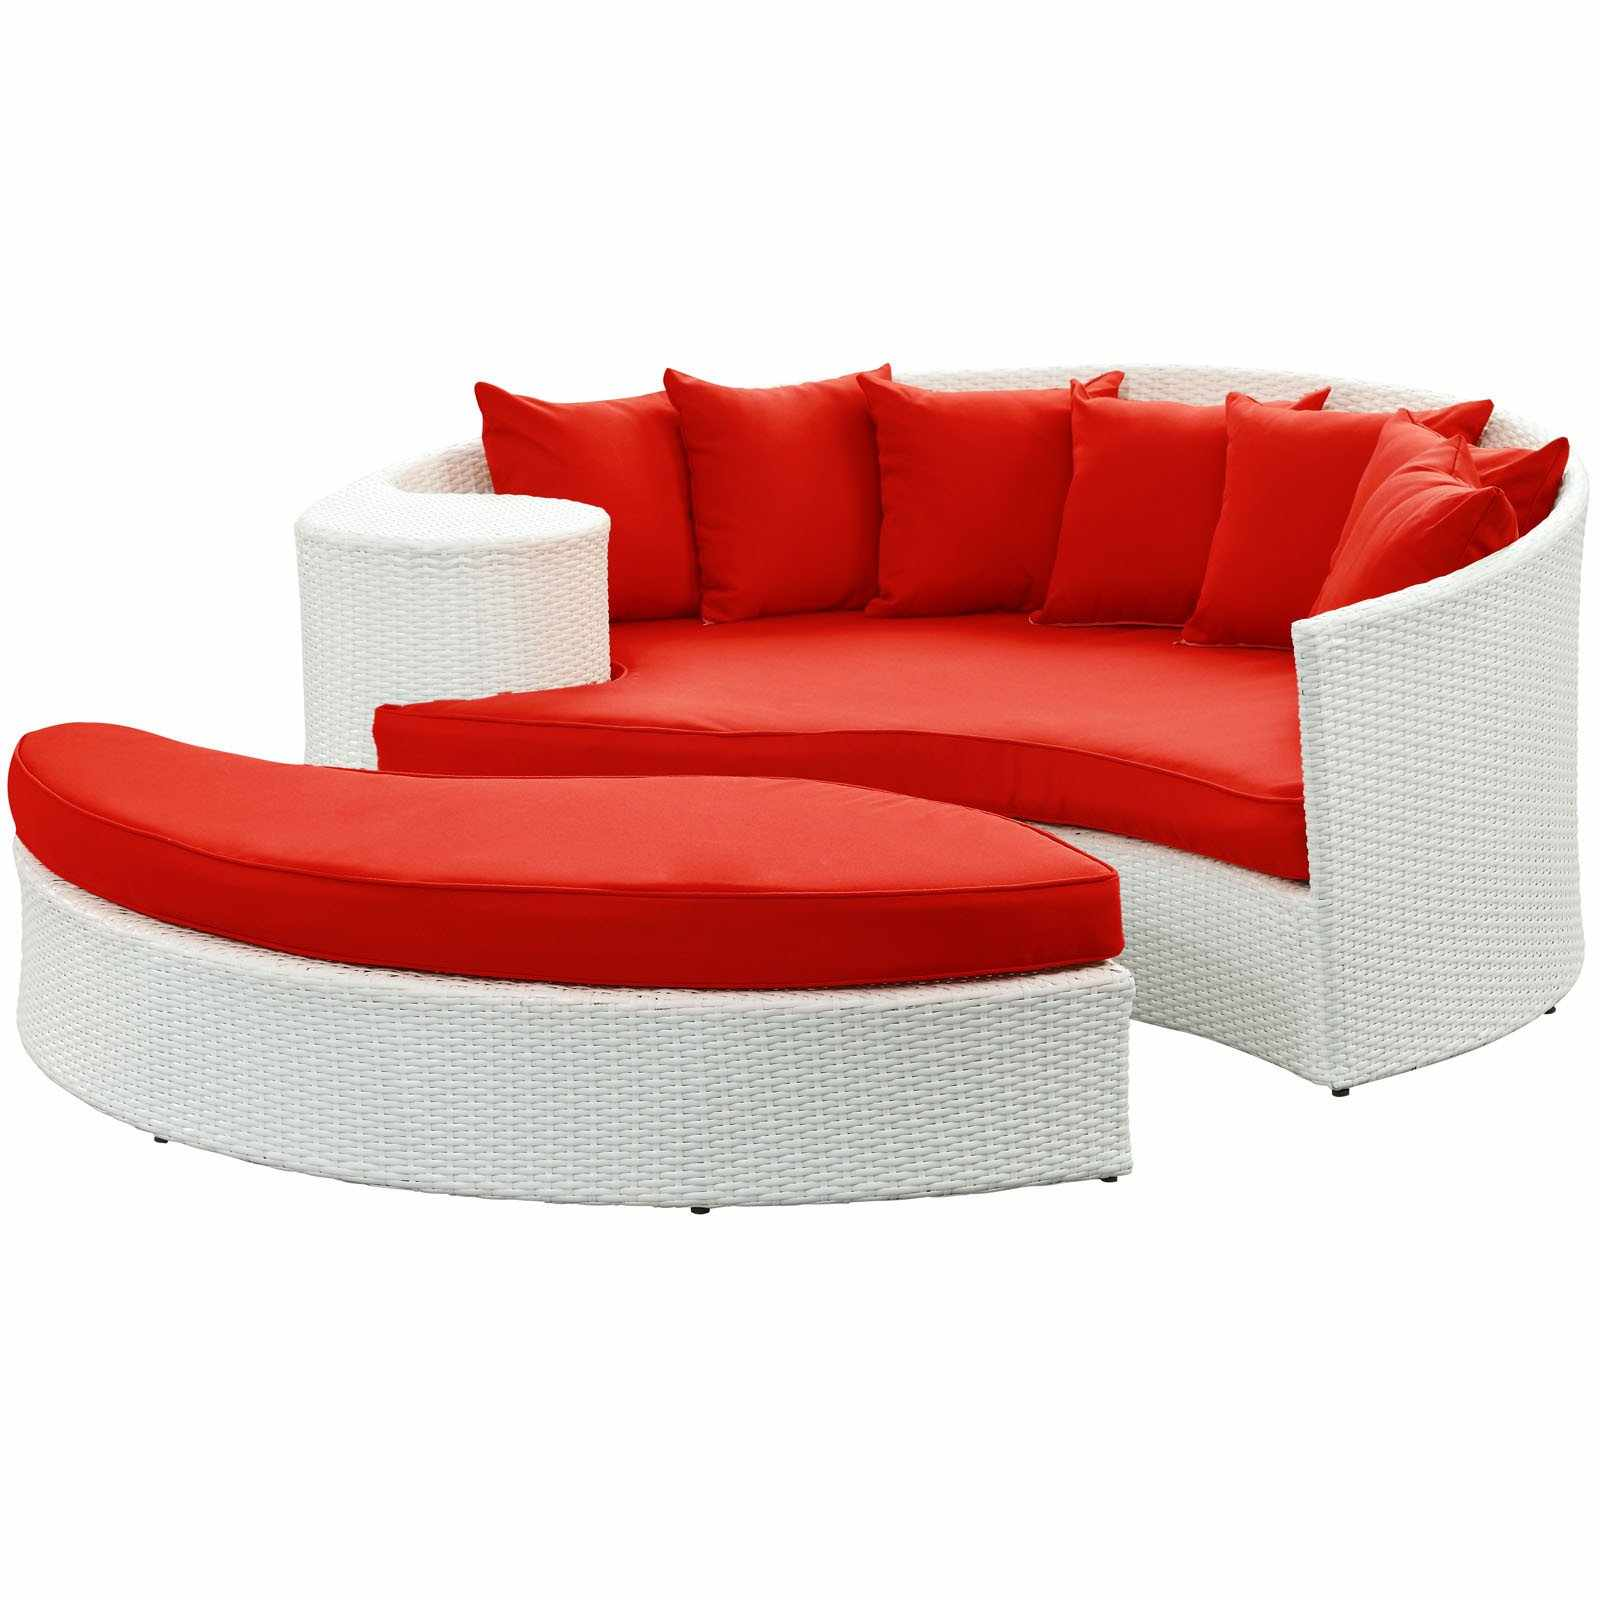 Havana Outdoor Daybed Ottoman And Pillows Included Free